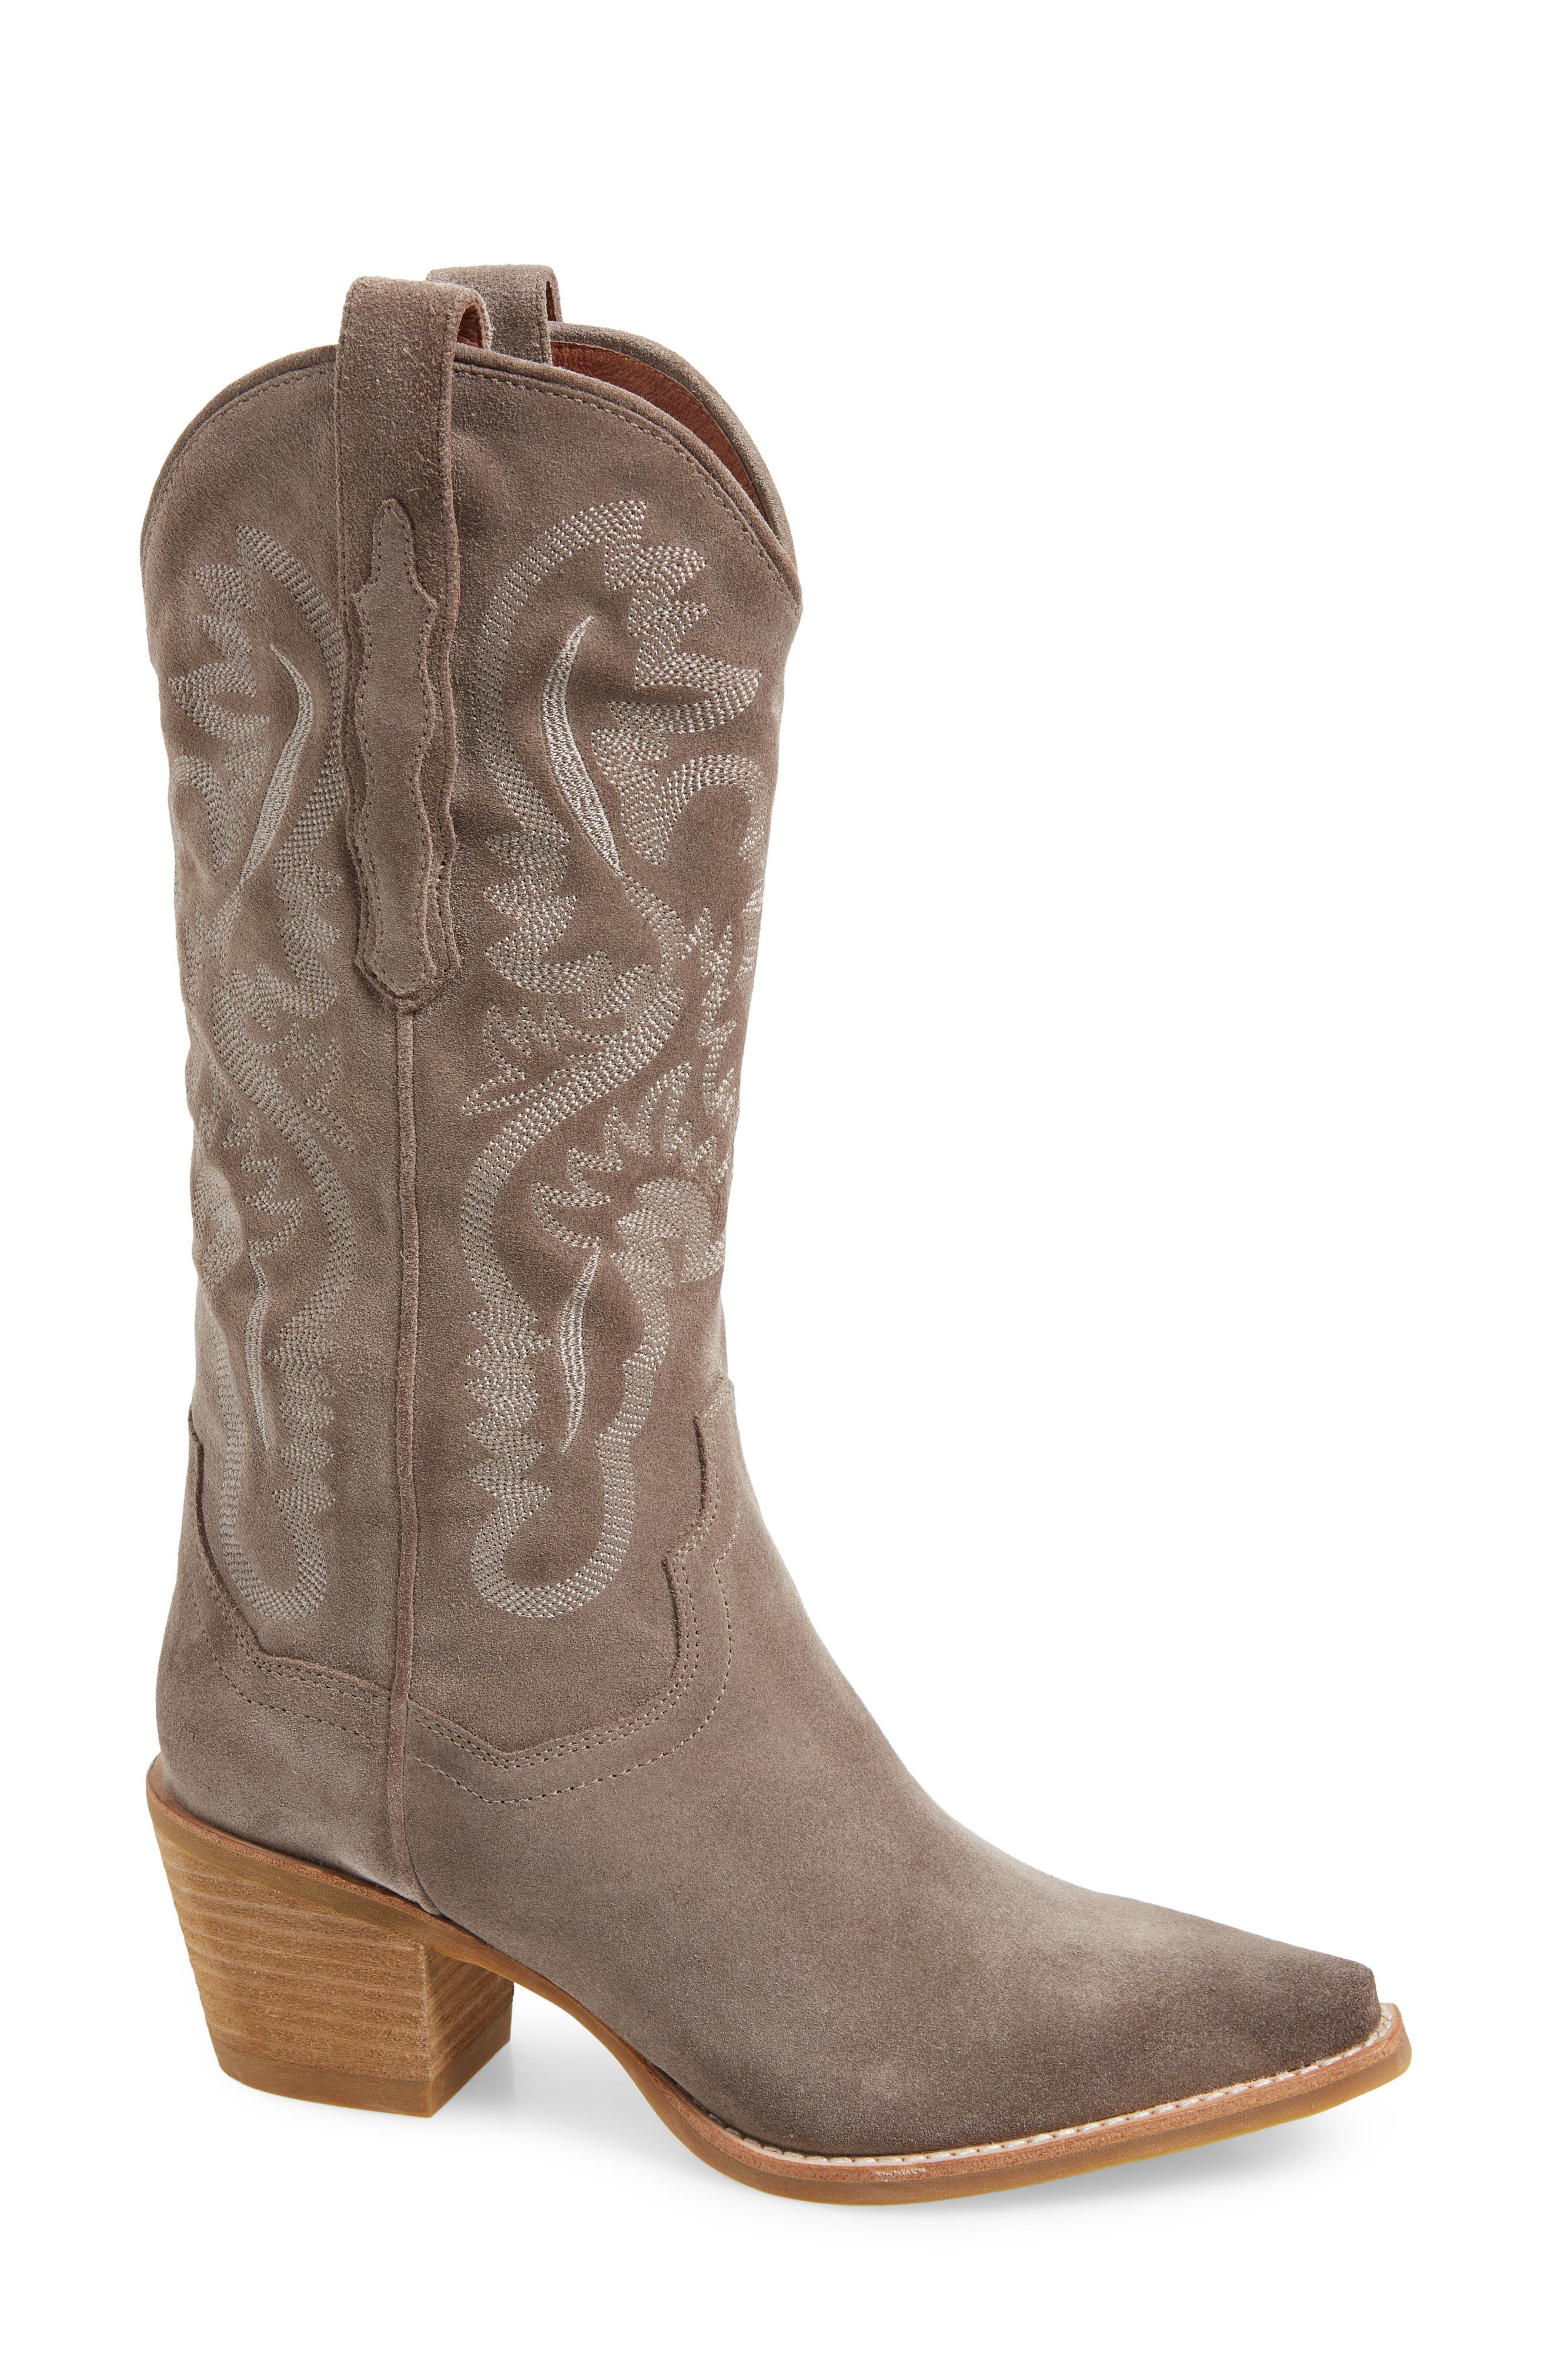 Dagget Western Boot,                             Main thumbnail 1, color,                             TAUPE SUEDE